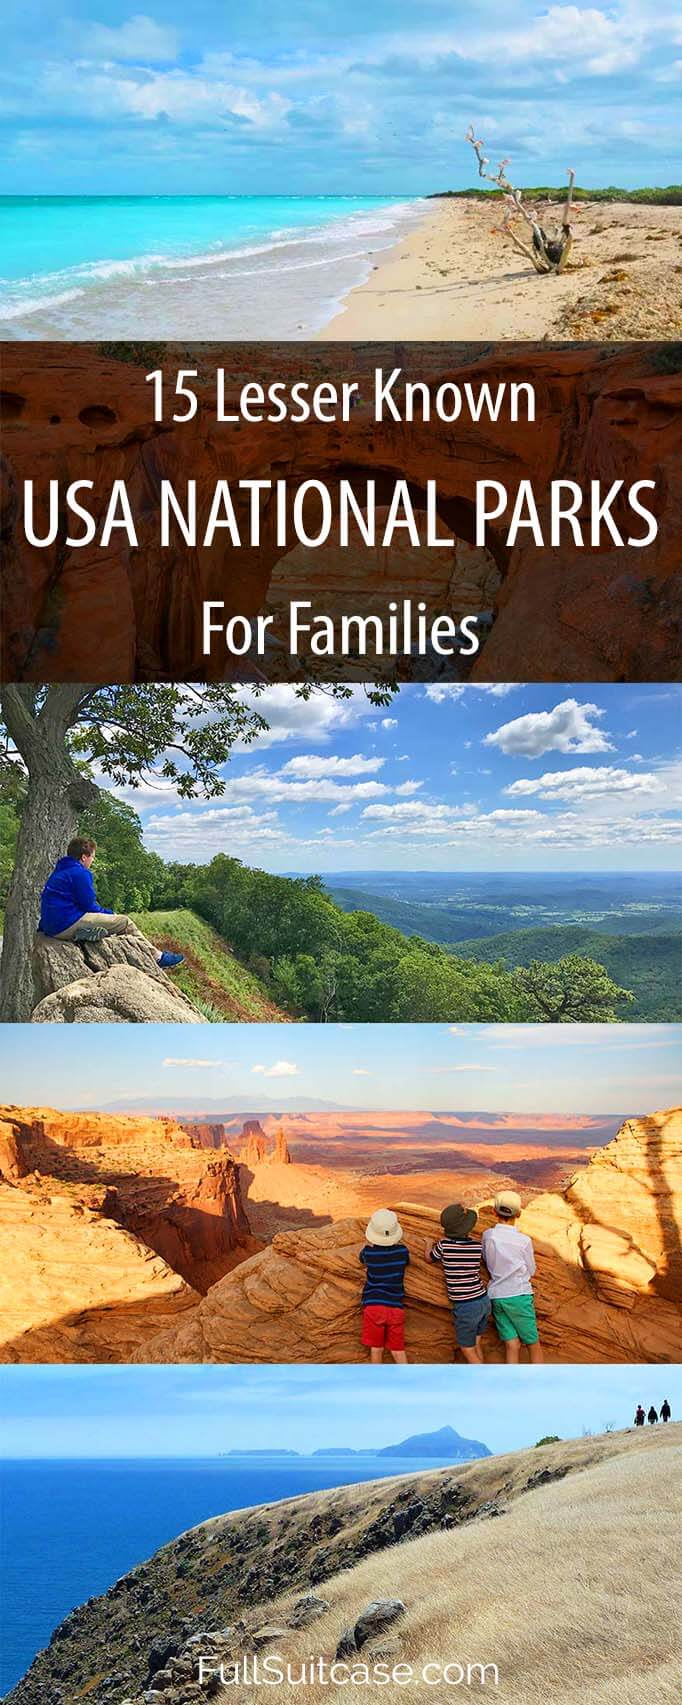 15 amazing less known American national parks for a family vacation without the crowds #nationalparks #familyvacation